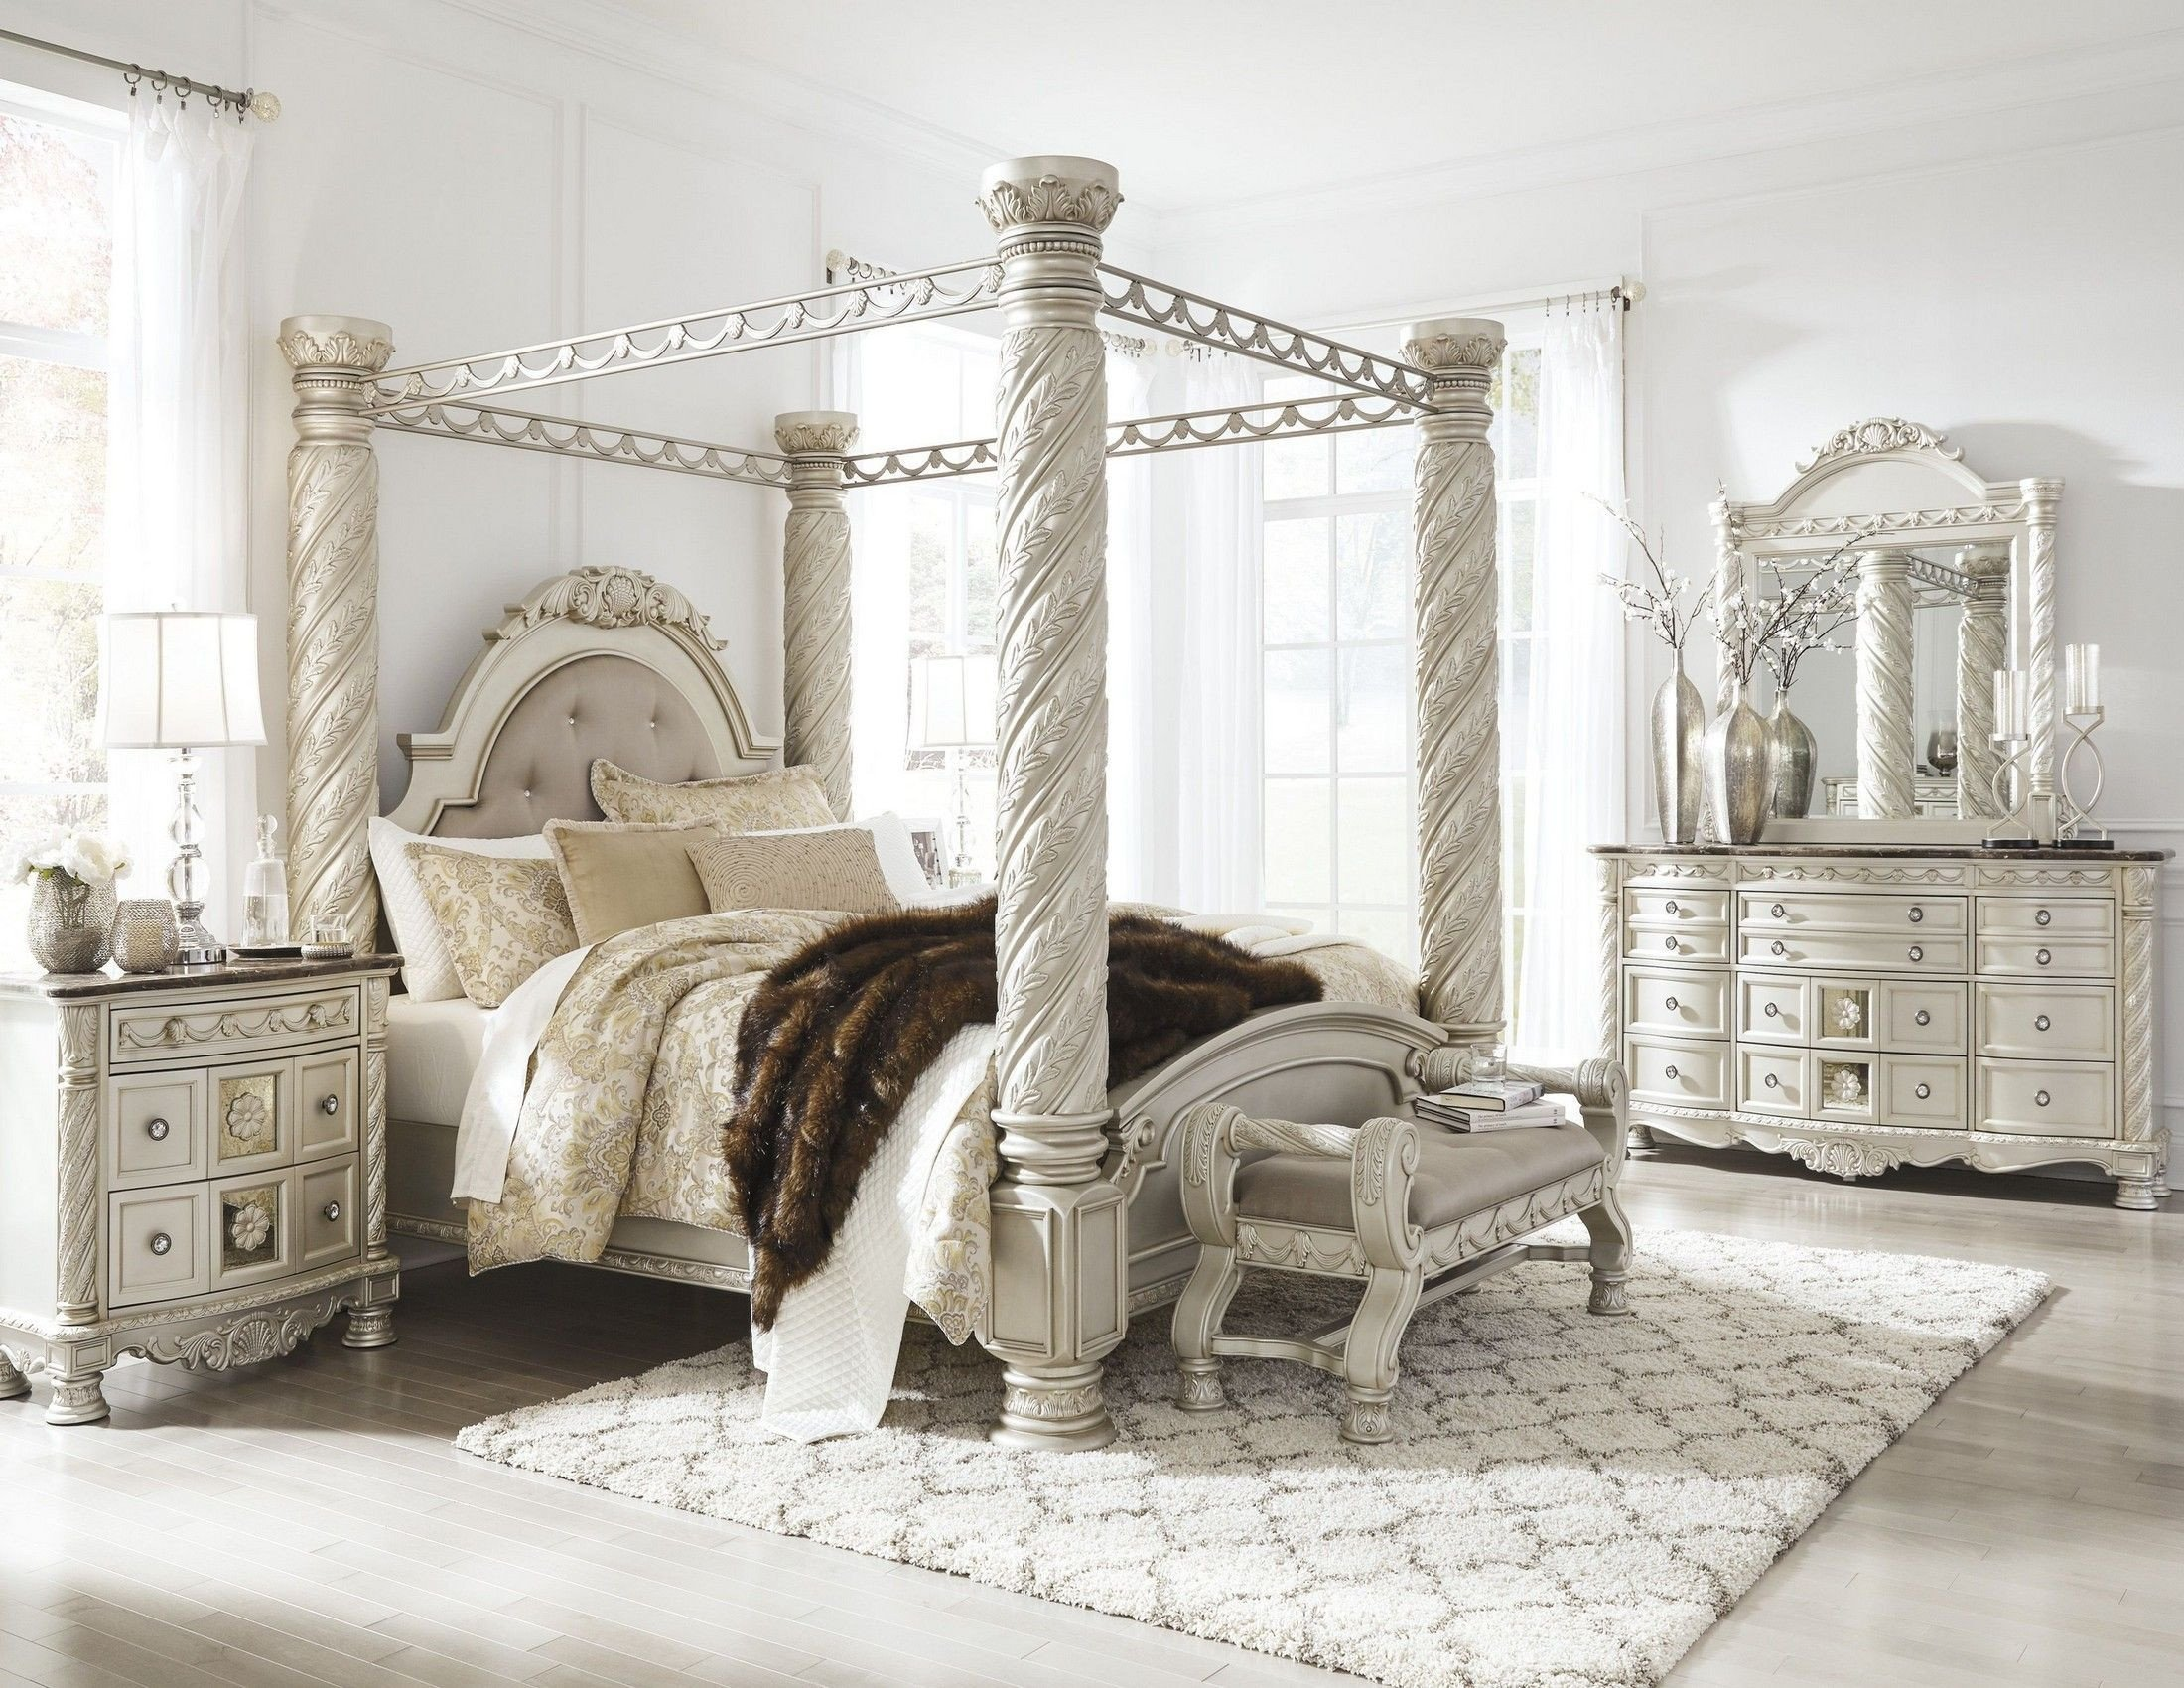 King Size Canopy Bedroom Set Inspirational Cassimore north Shore Pearl Silver Upholstered Poster Canopy